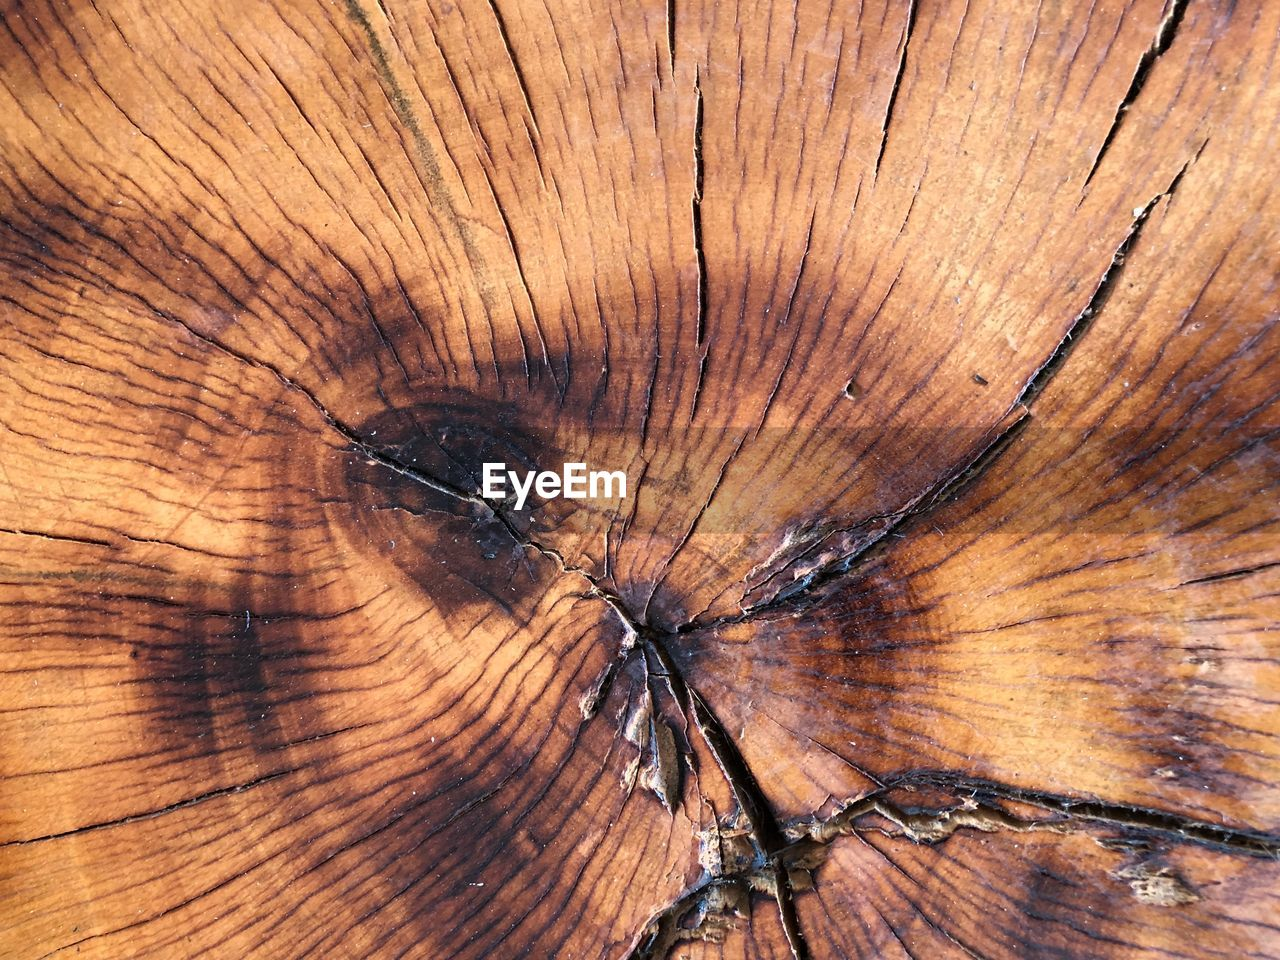 wood - material, backgrounds, textured, brown, full frame, close-up, pattern, no people, wood, tree ring, cracked, wood grain, tree, tree stump, cross section, nature, extreme close-up, natural pattern, day, plant, bark, concentric, textured effect